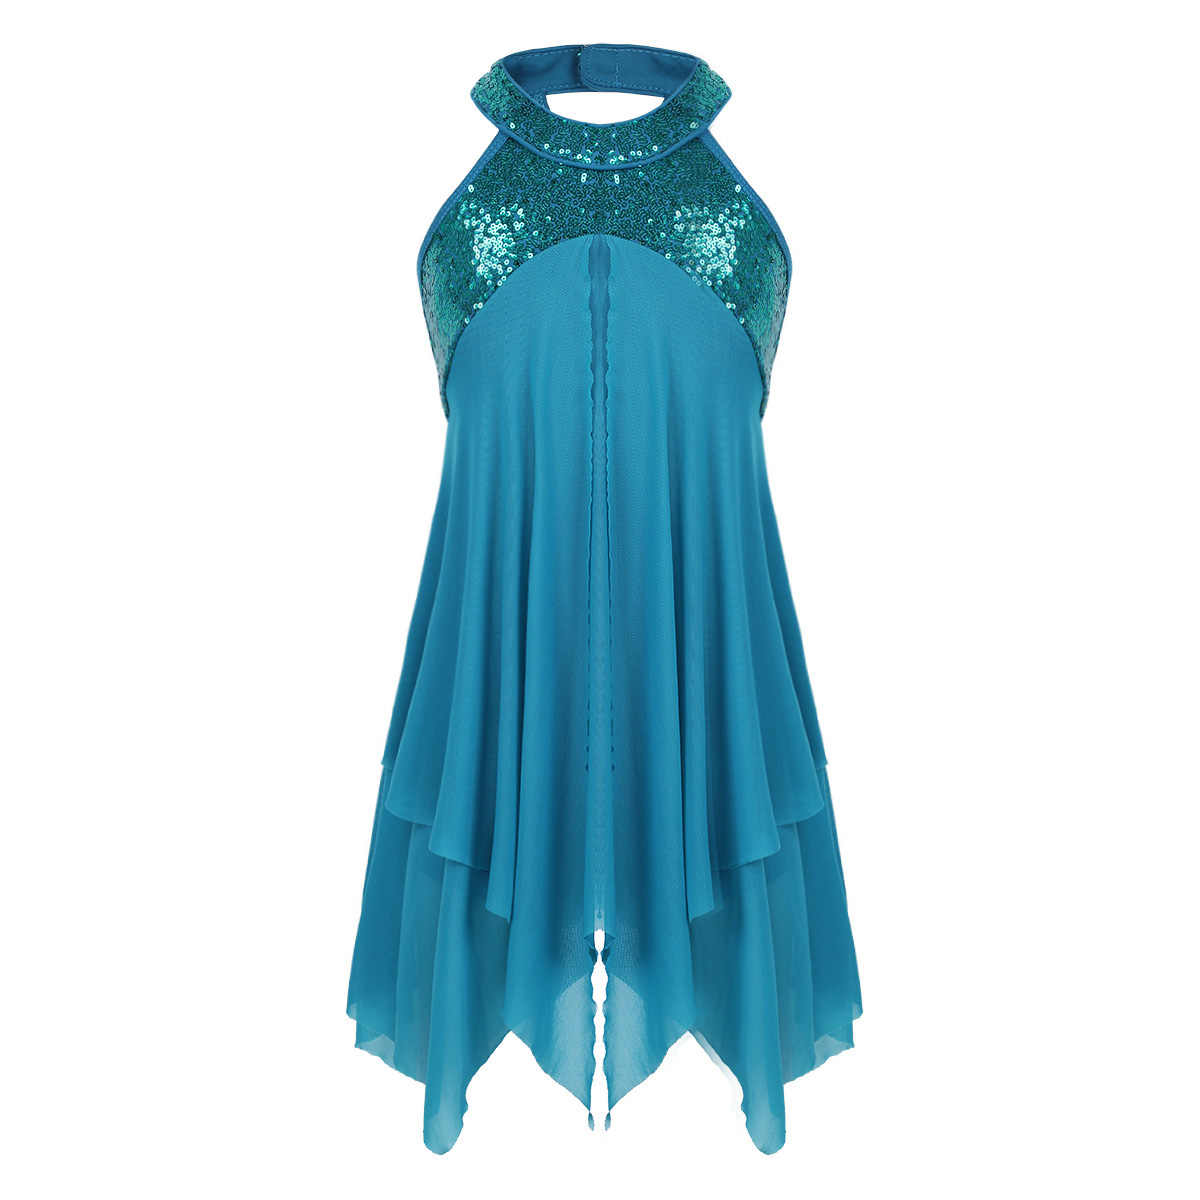 11b6b5e31 Detail Feedback Questions about Kids Latin Dance Dress for Girls ...